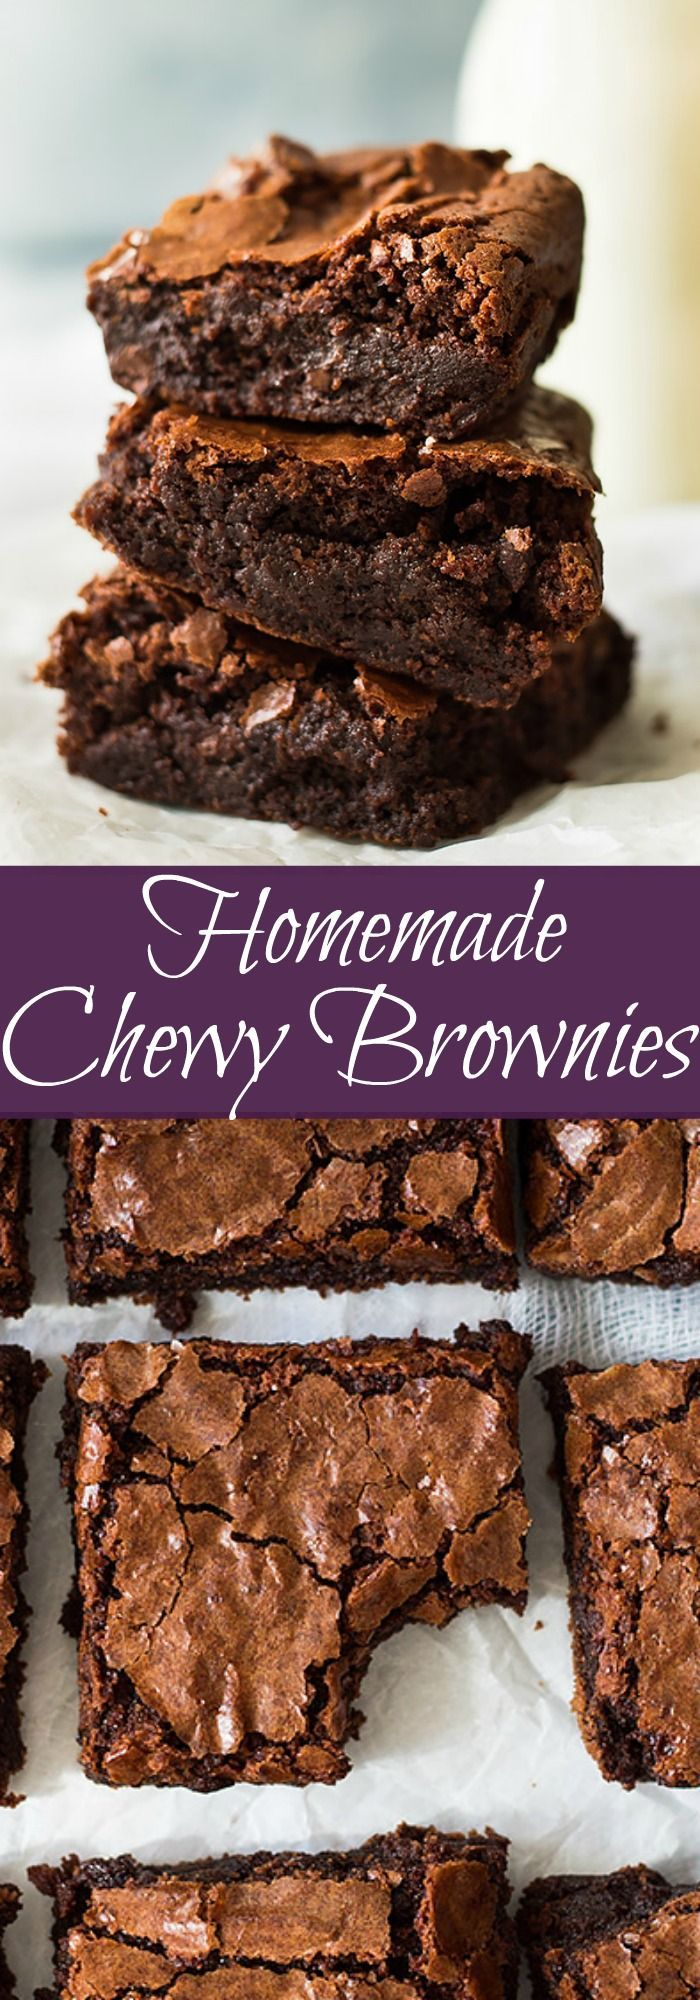 These Homemade Chewy Brownies are thick, chewy, fudgy and made completely from scratch. You'll never need a box mix again!!   http://www.countrysidecravings.com